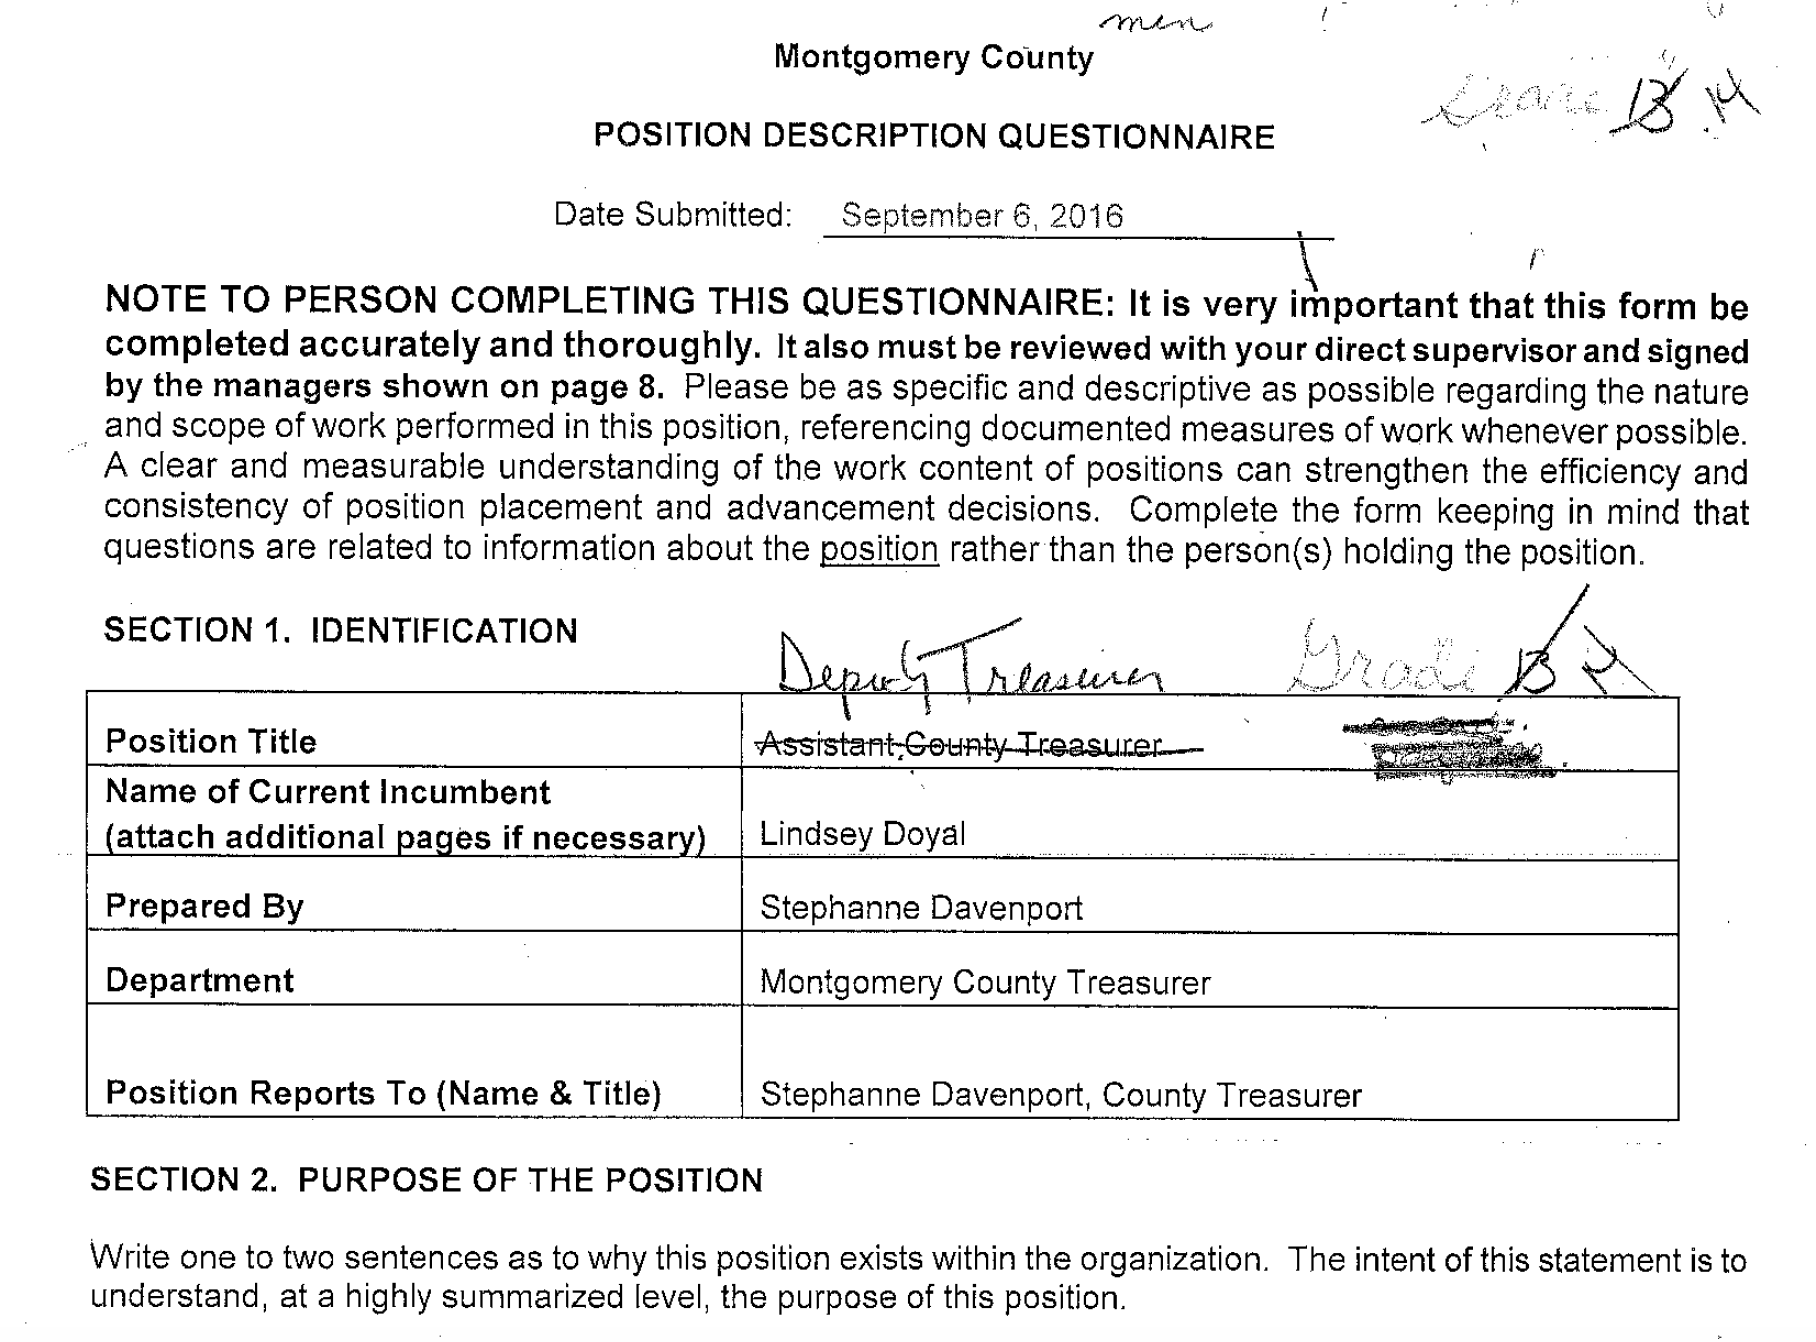 Position Description Questionnaire, Which County Treasurer Stephanne  Davenport Prepared In Order To Give The County Judgeu0027s Daughter A Promotion.